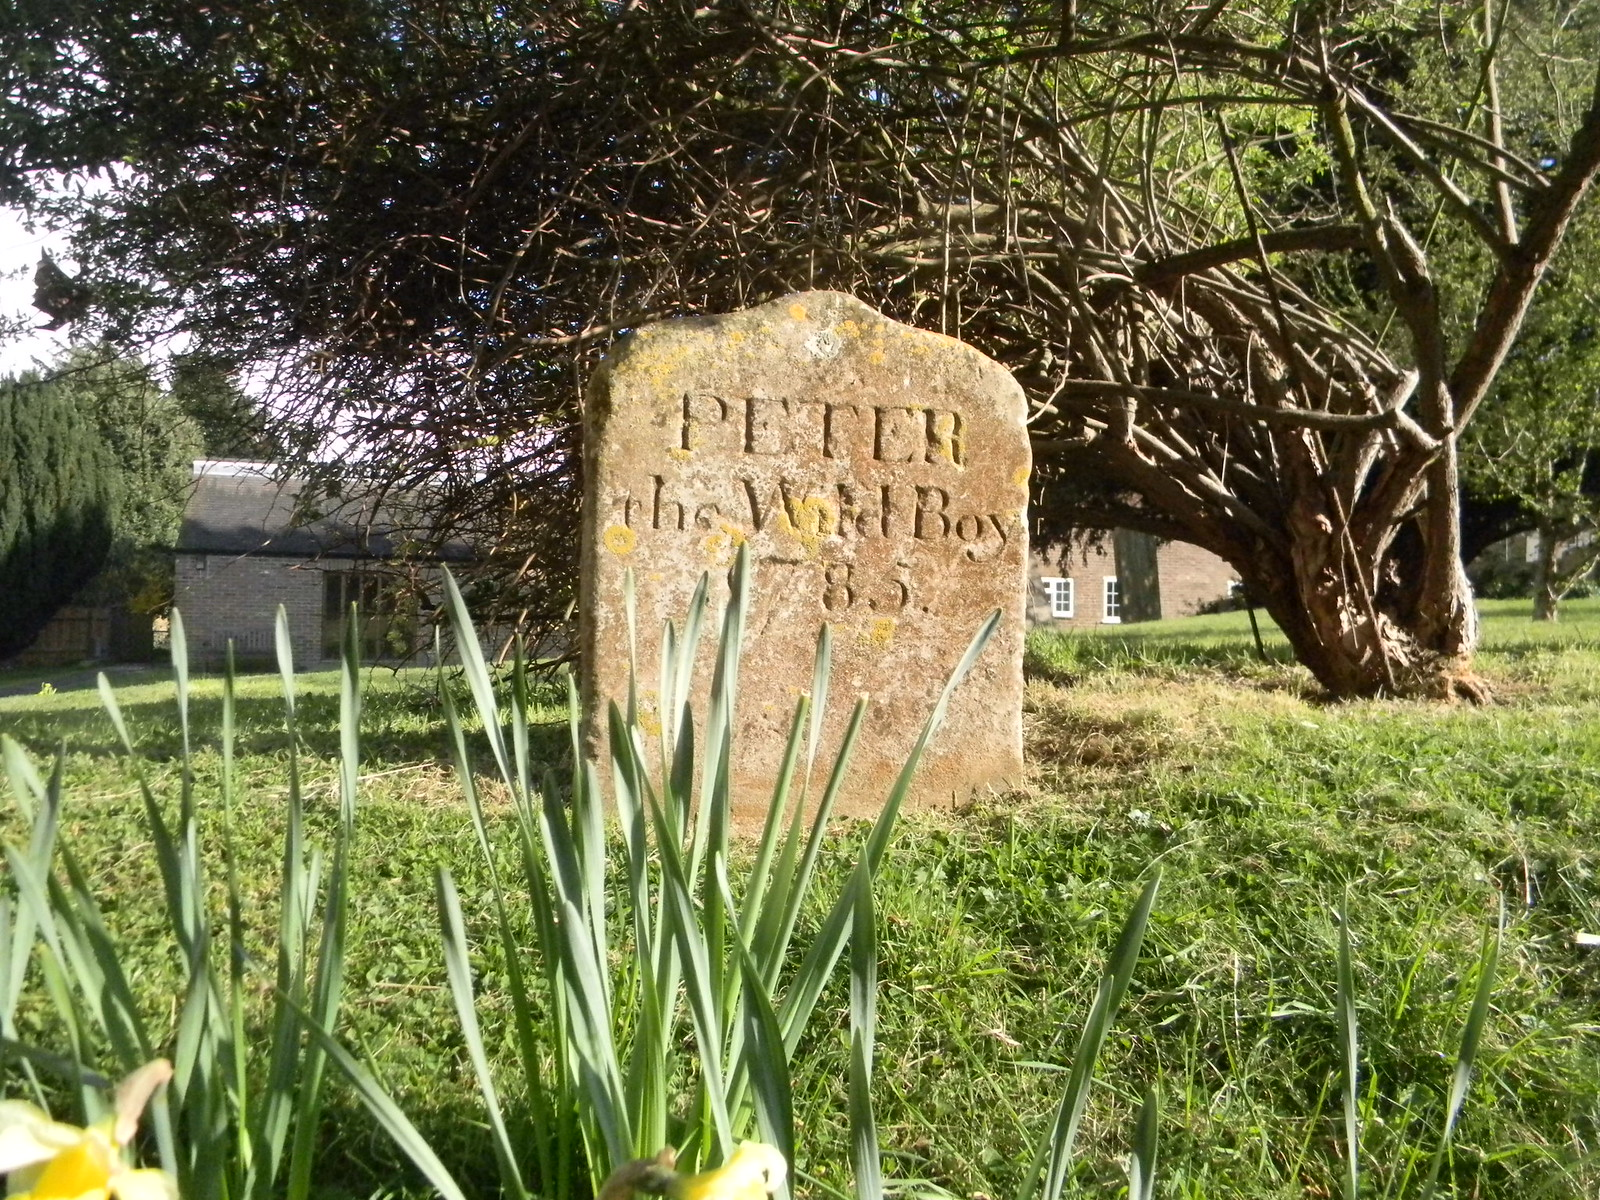 Peter the Wild Boy's grave, Northchurch St Mary's Northchurch. Not on the walk - I tried heading south to Northchurch. (An experiment I'm in no hurry to repeat.)